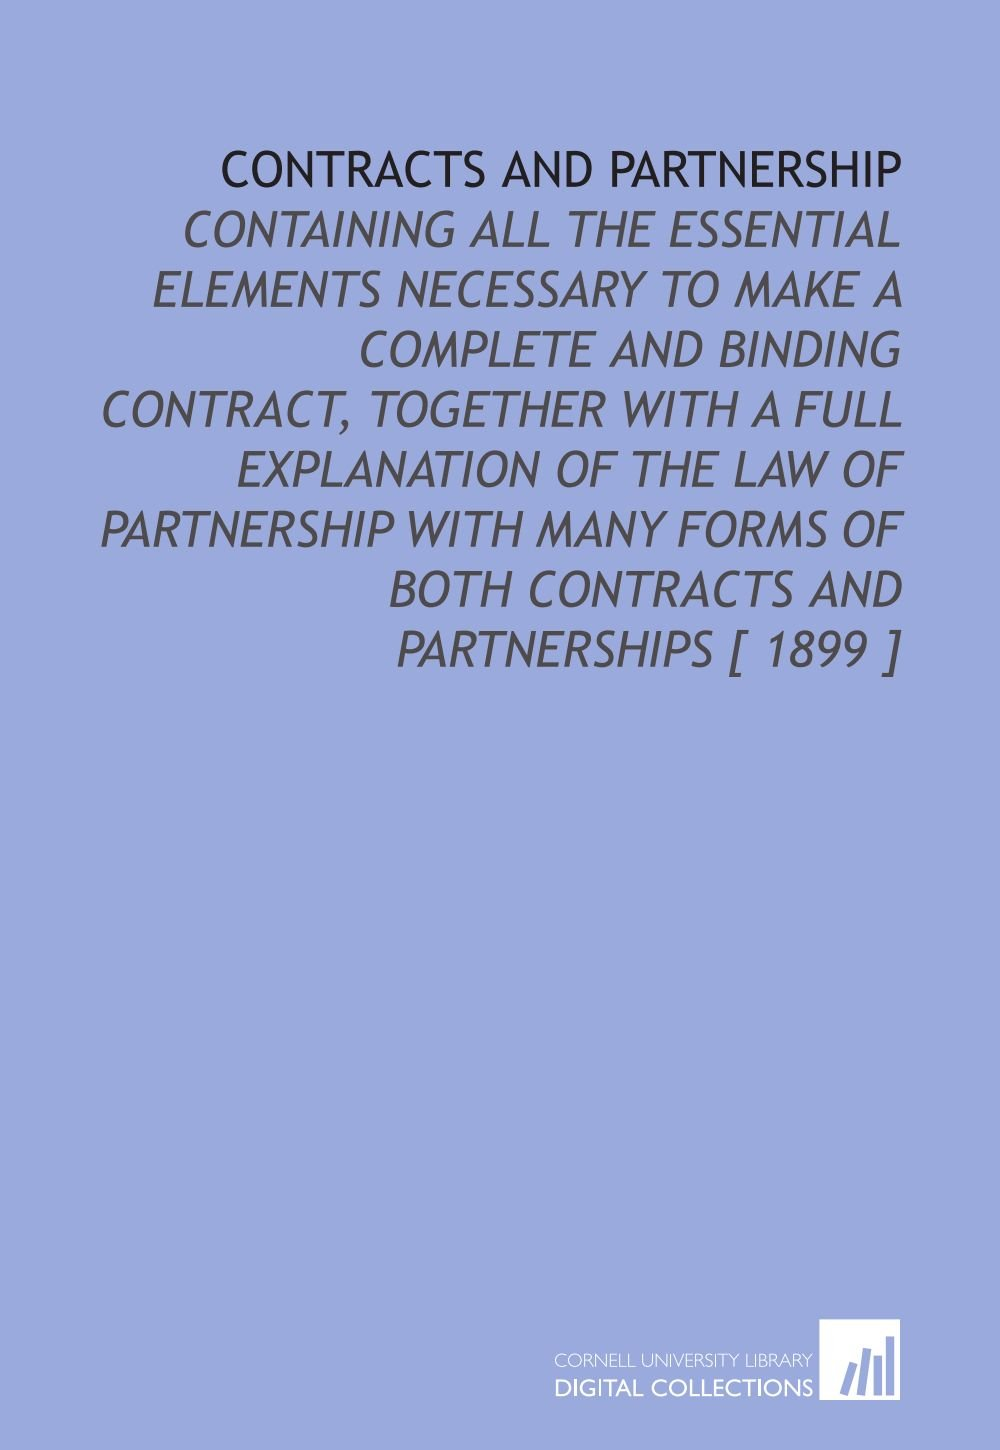 Contracts and Partnership: Containing All the Essential Elements Necessary to Make a Complete and Binding Contract, Together With a Full Explanation ... of Both Contracts and Partnerships [ 1899 ] ebook